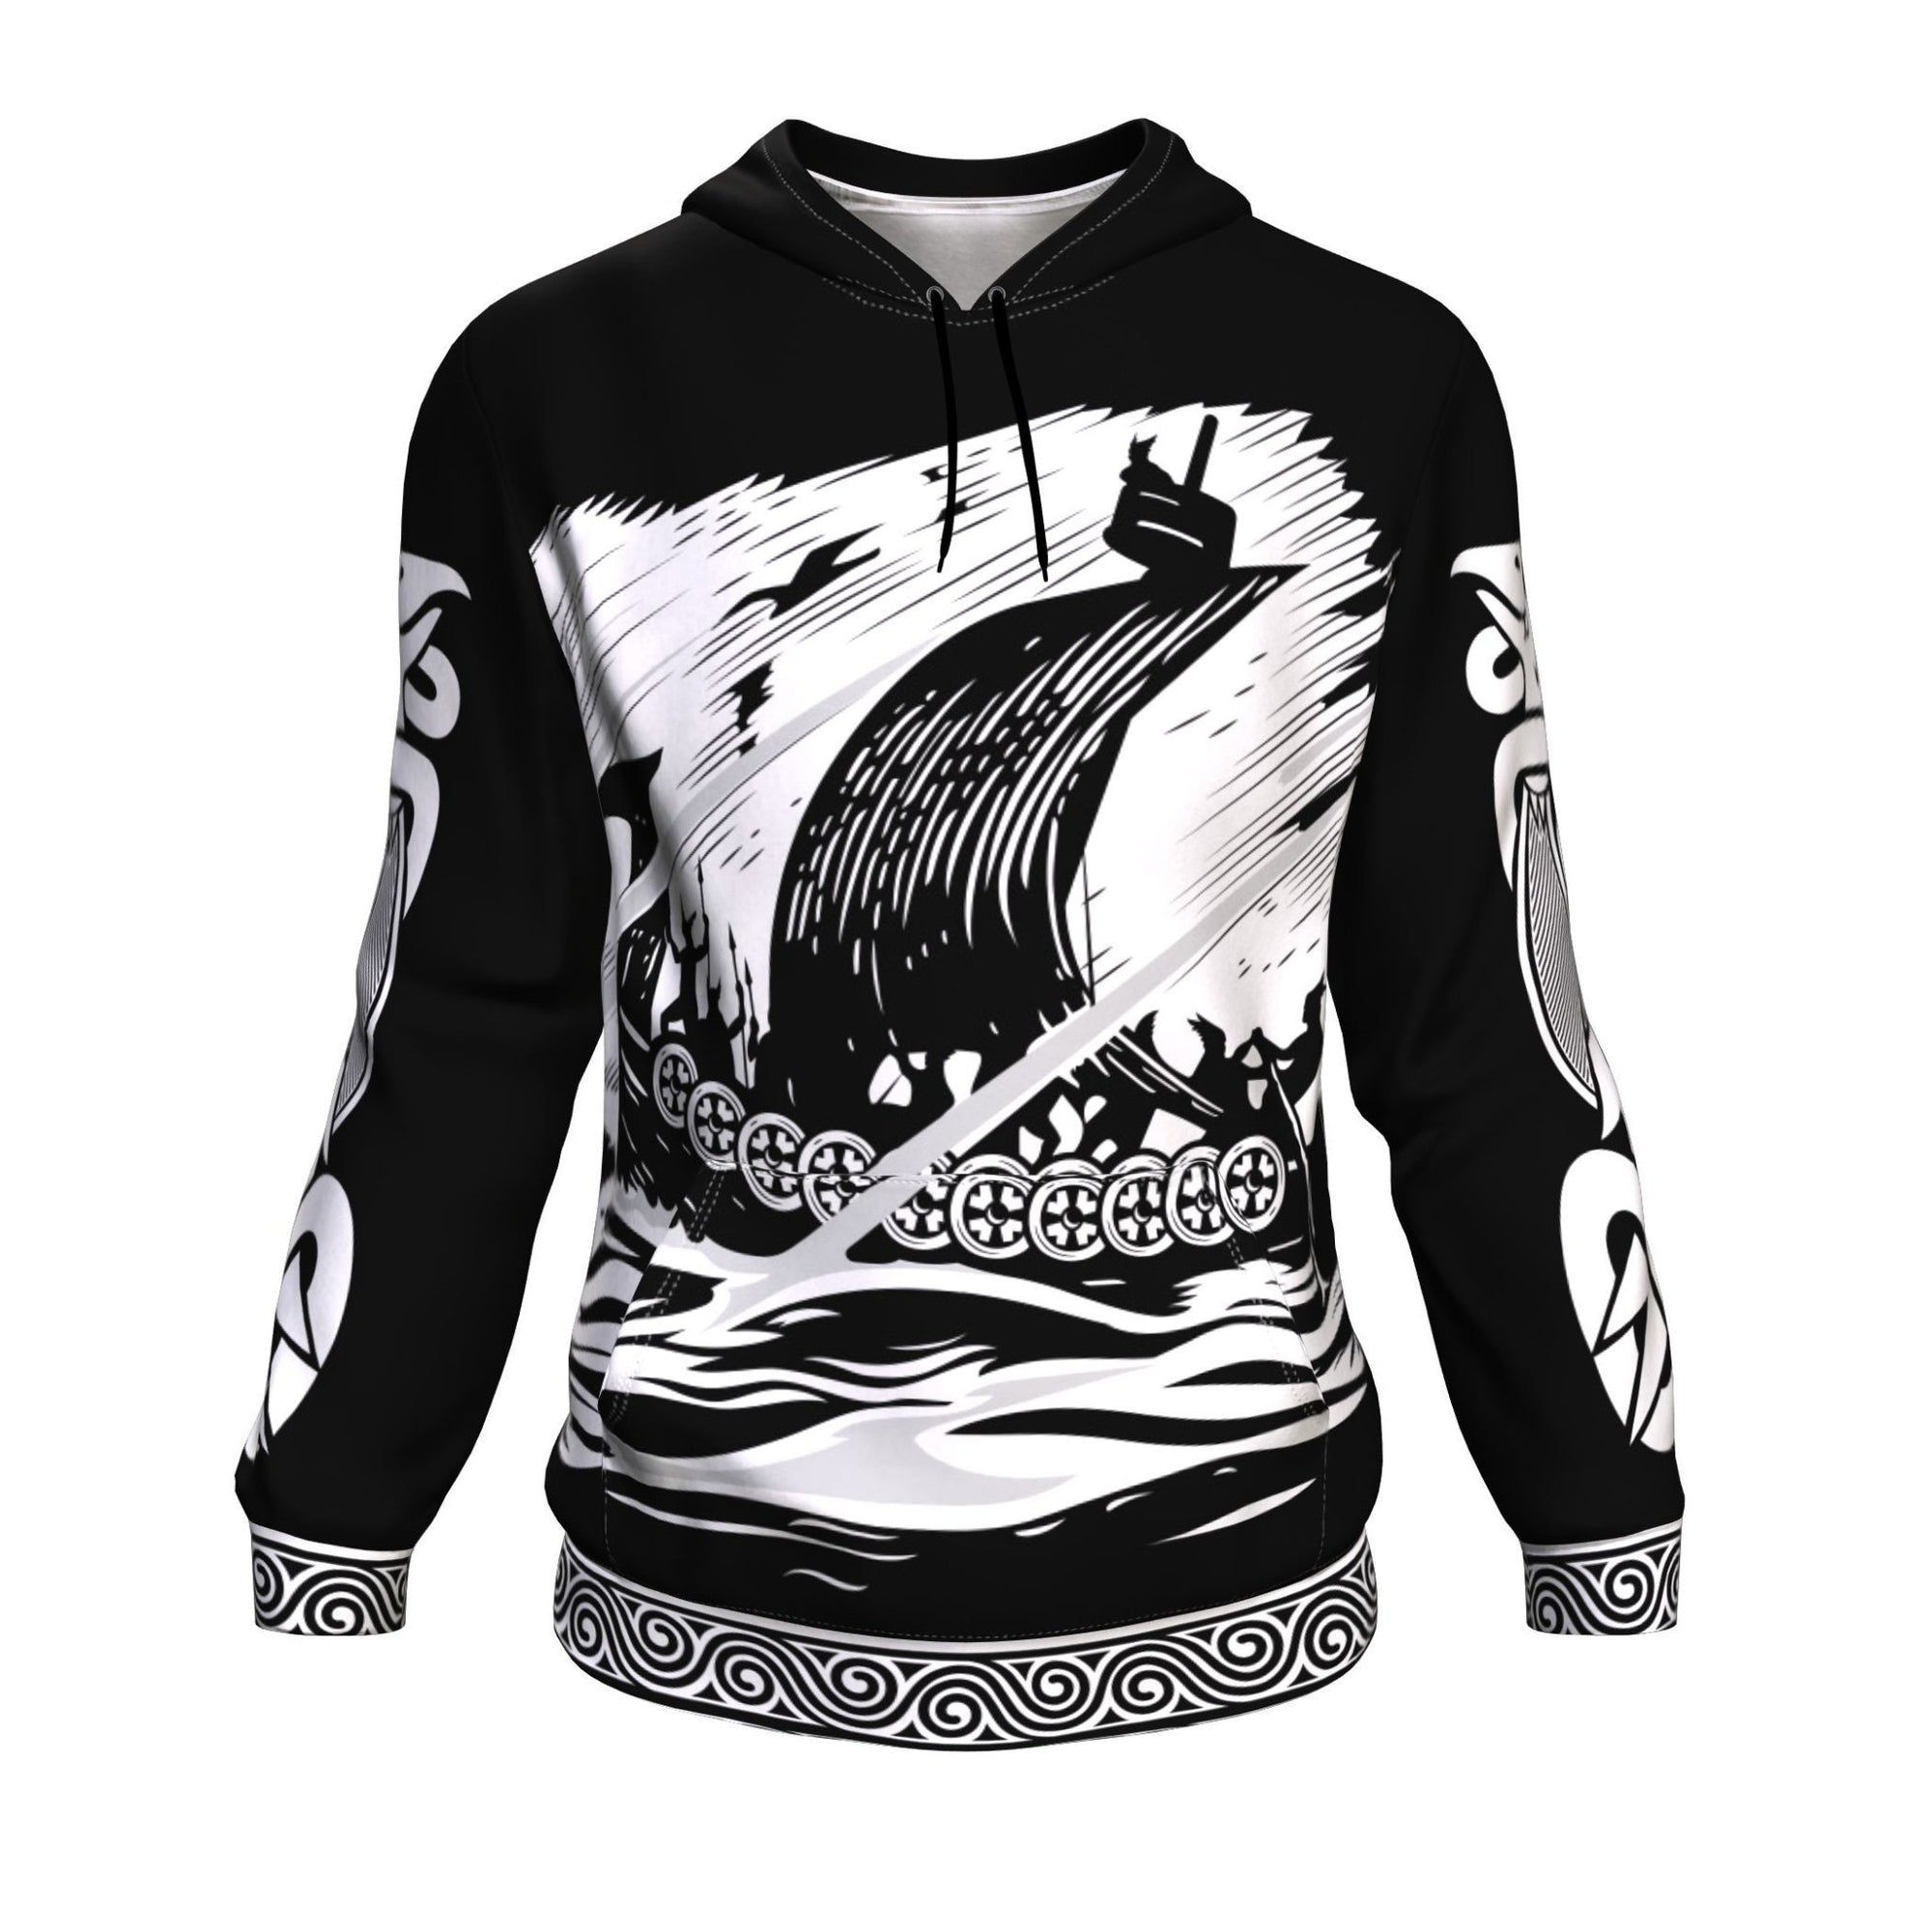 Drakkar Sailing with Viking Warriors Black Hoodie